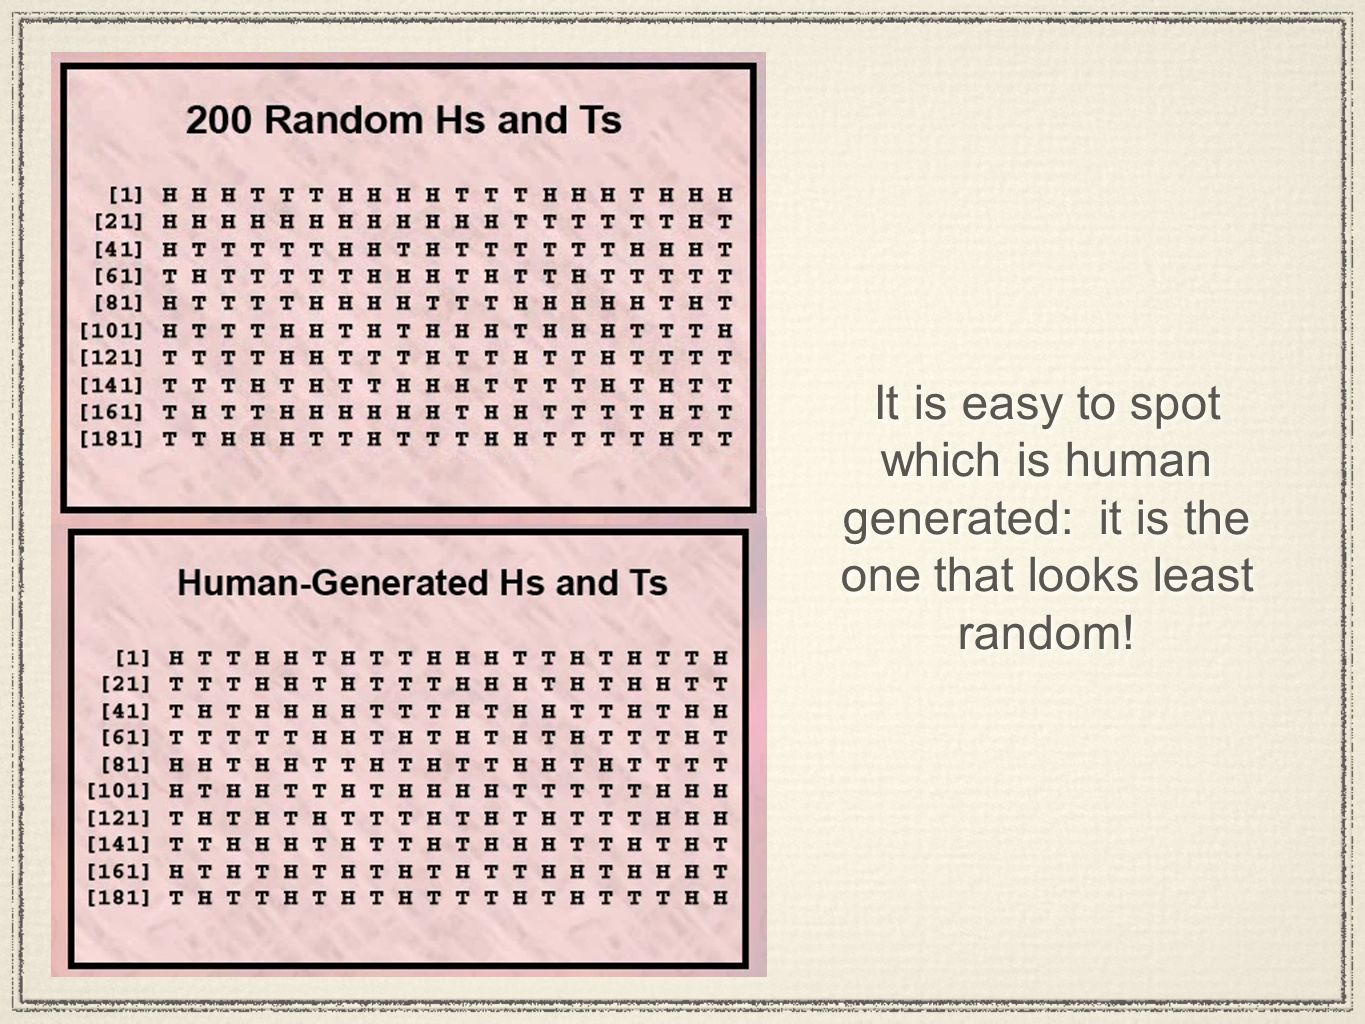 It is easy to spot which is human generated: it is the one that looks least random!